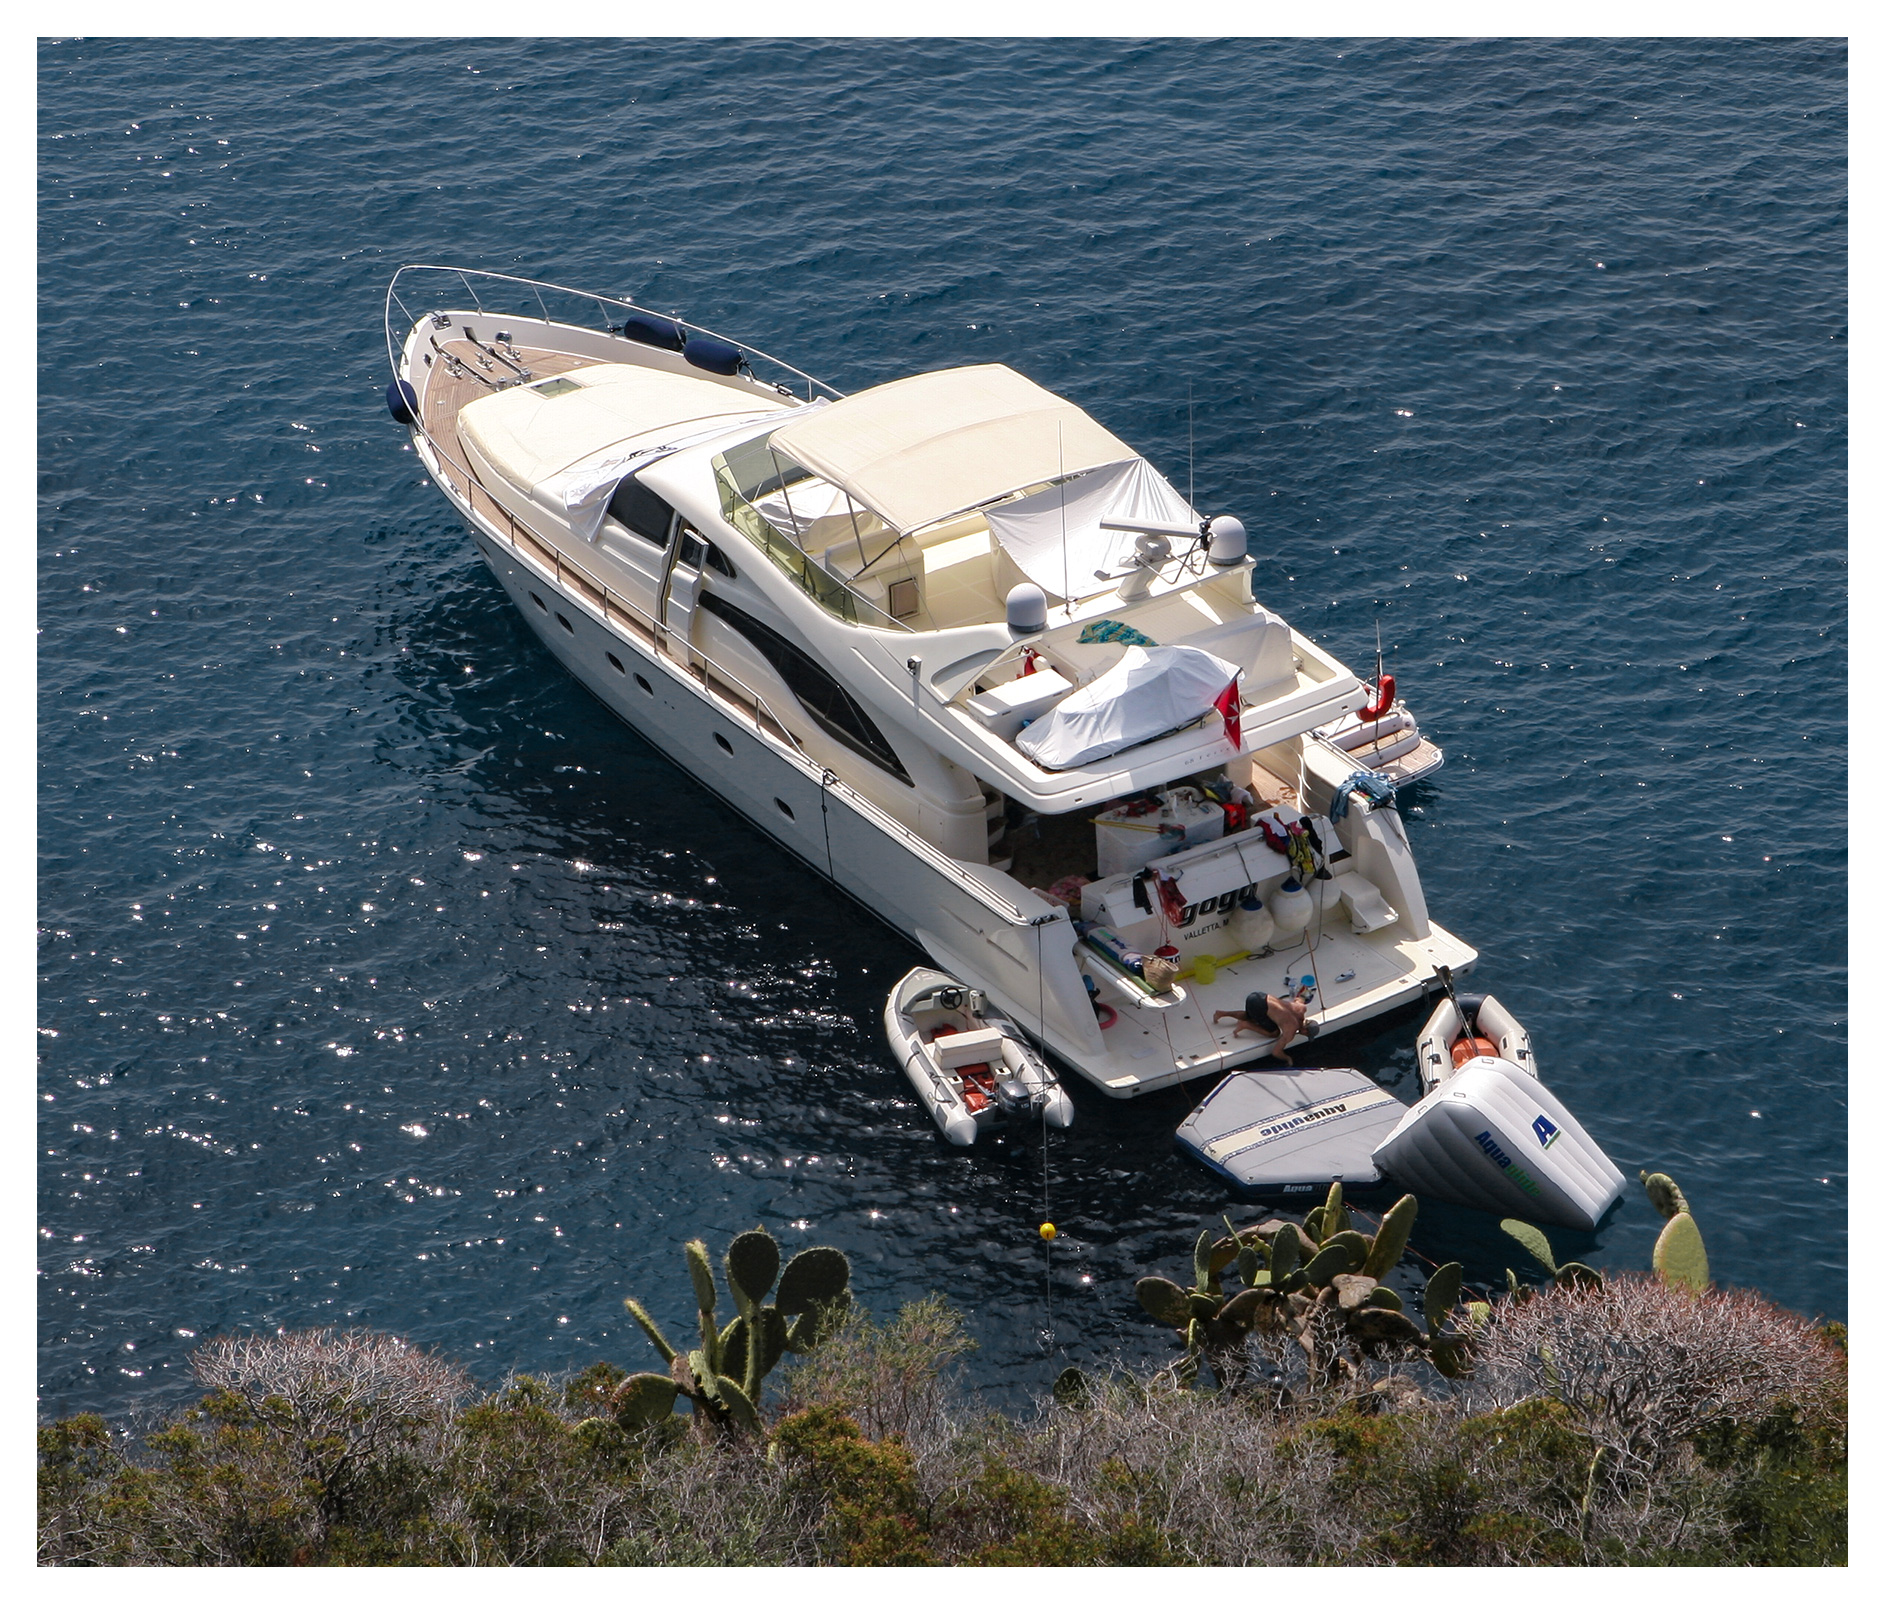 Skipper working on his motor yacht, anchored off Capo Milazzese, Panarea, Aeolian islands, Sicily